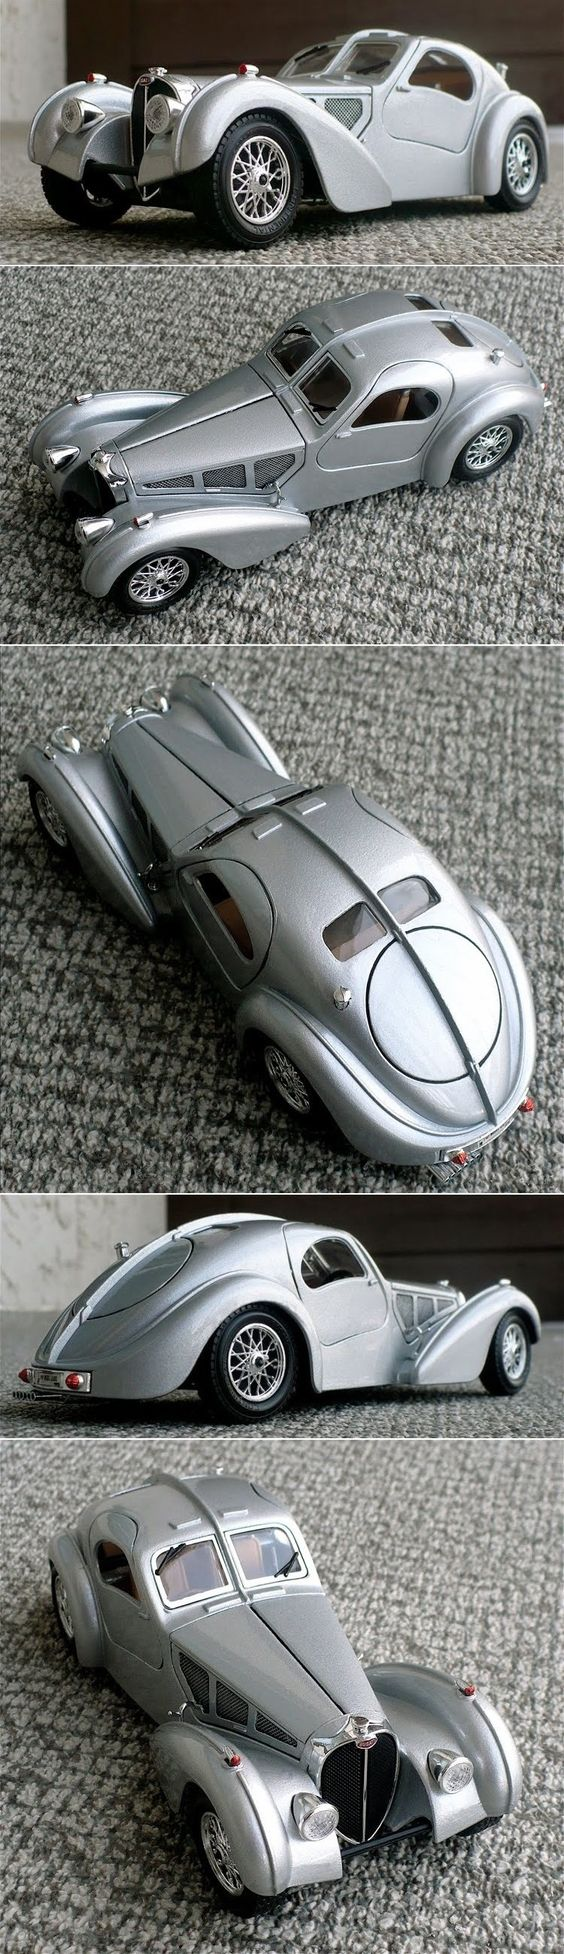 Bugatti 35 whitebox 1 43e bugatti miniatures model cars pinterest bugatti